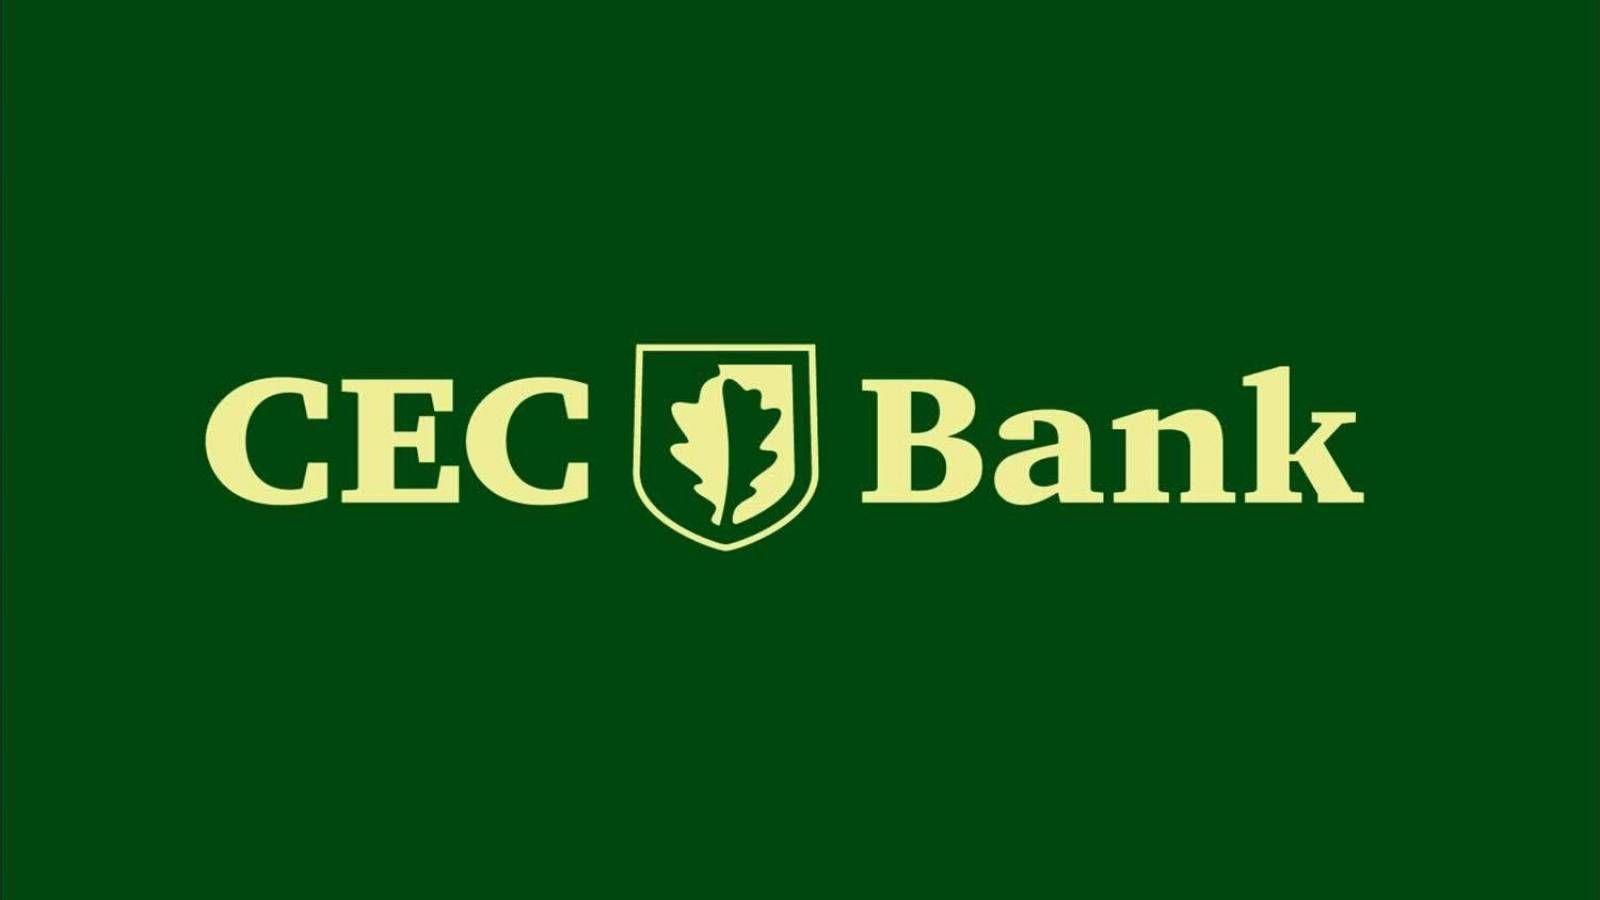 CEC Bank notificari